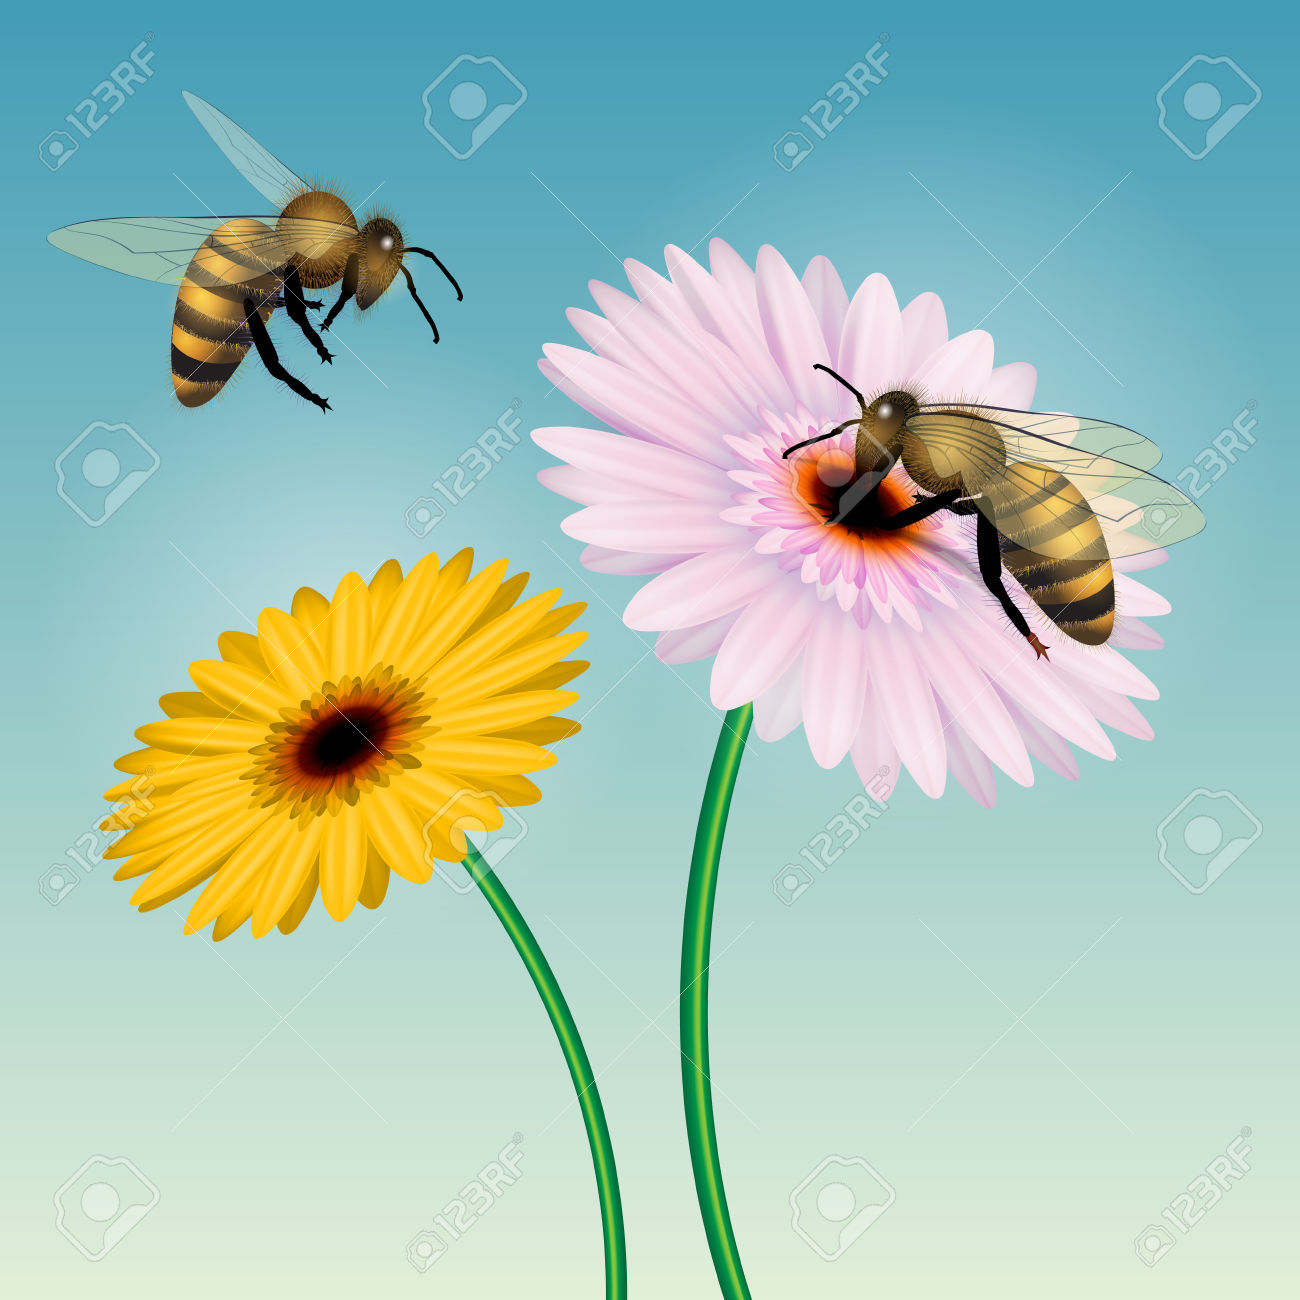 Honey Bee Collecting Nectar On A Flower. Isolated On White. Vector.